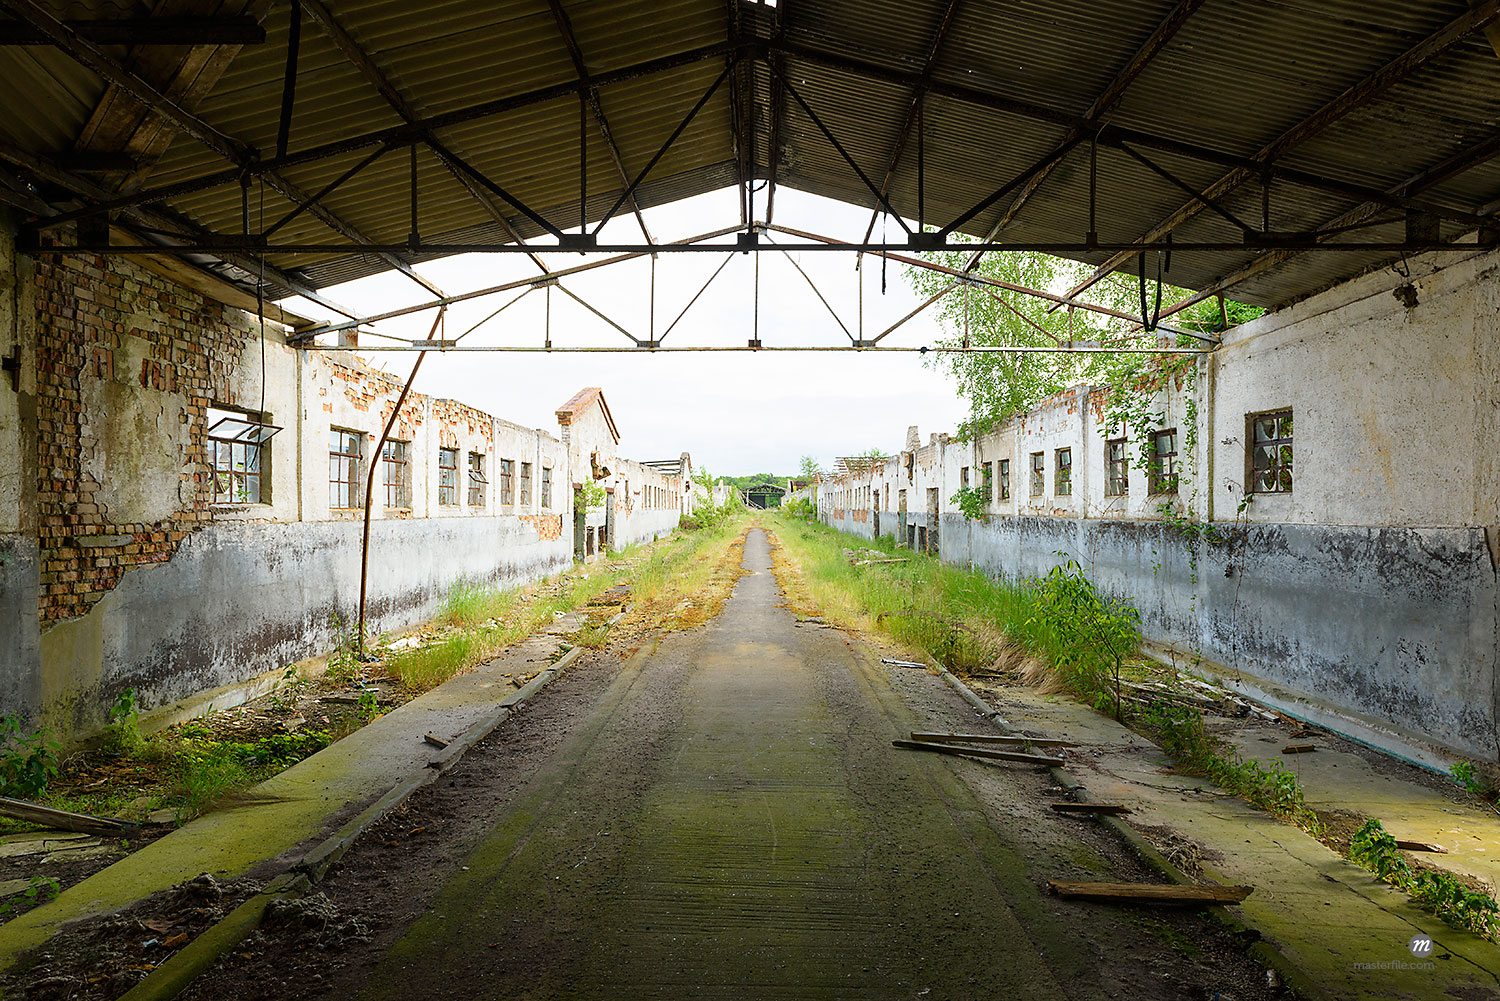 Roof framework over road and old decayed buildings in Mecklenburg Vorpommern, Germany  © © Michael Breuer / Masterfile